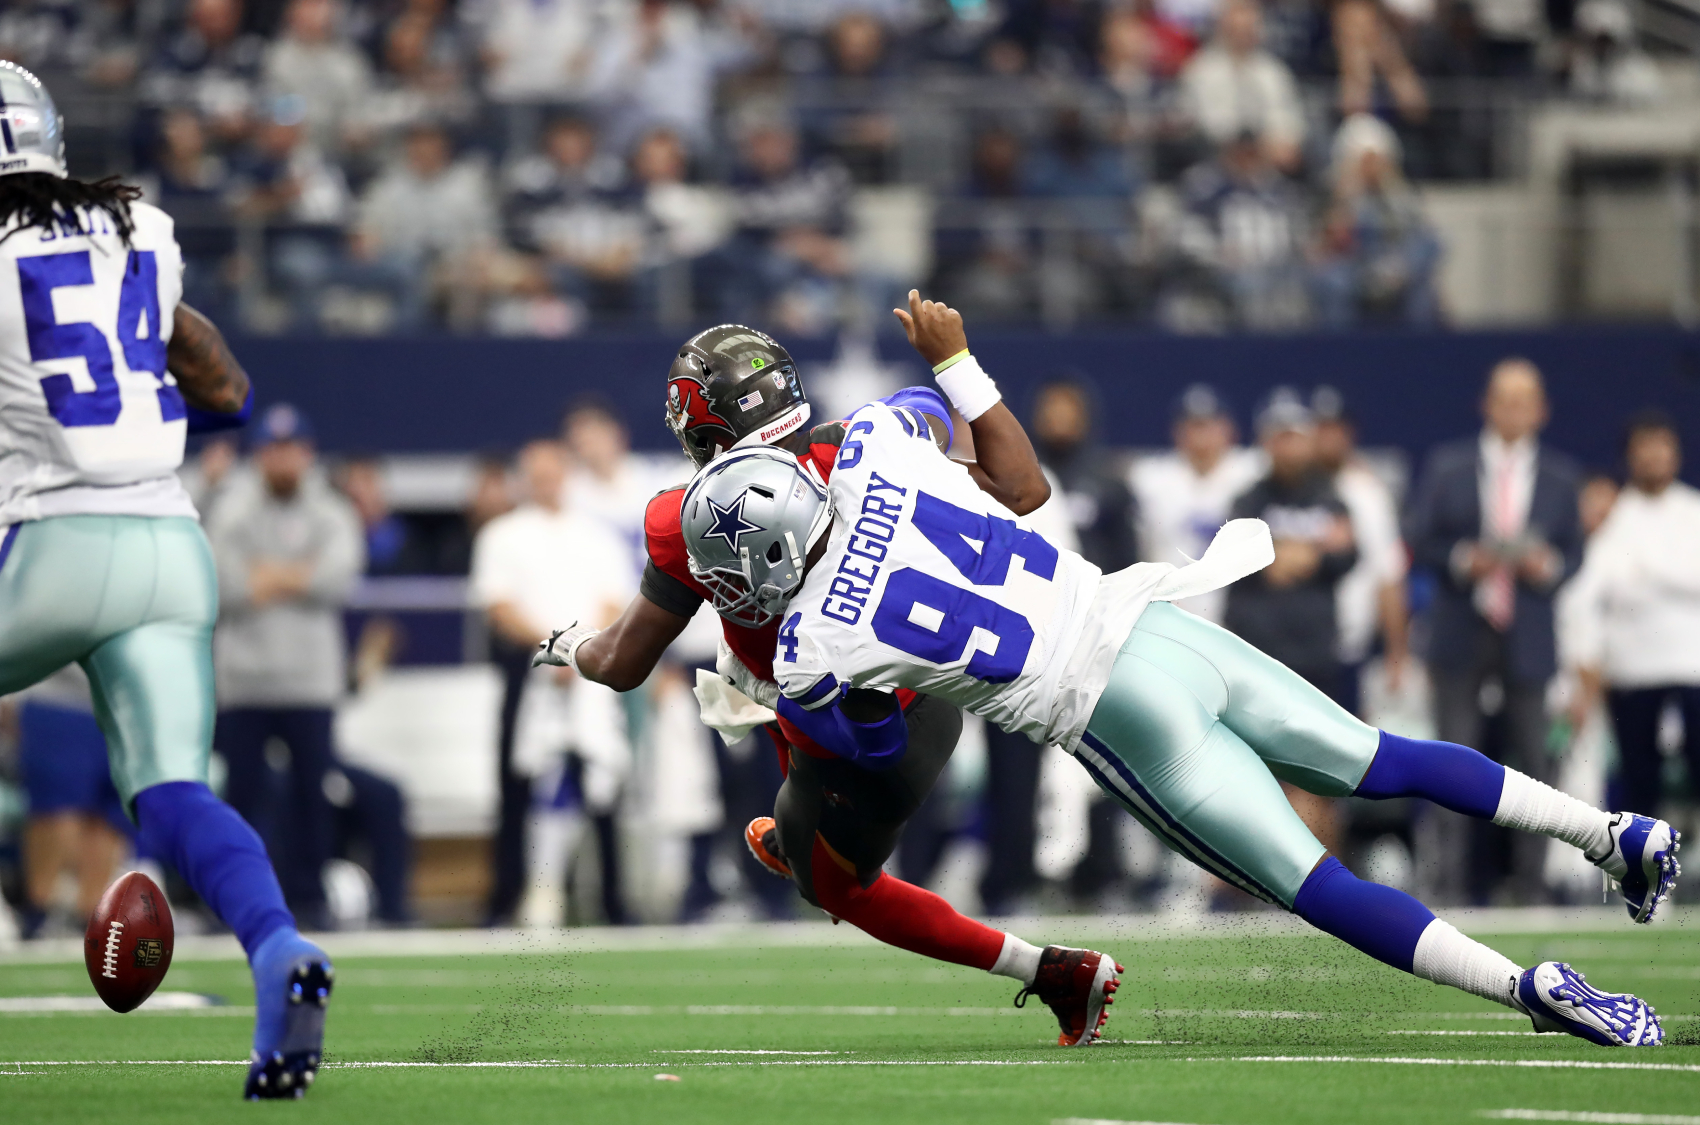 Dallas Cowboys pass rusher Randy Gregory has not played since the 2018 season. He now, however, has hopes of getting reinstated.